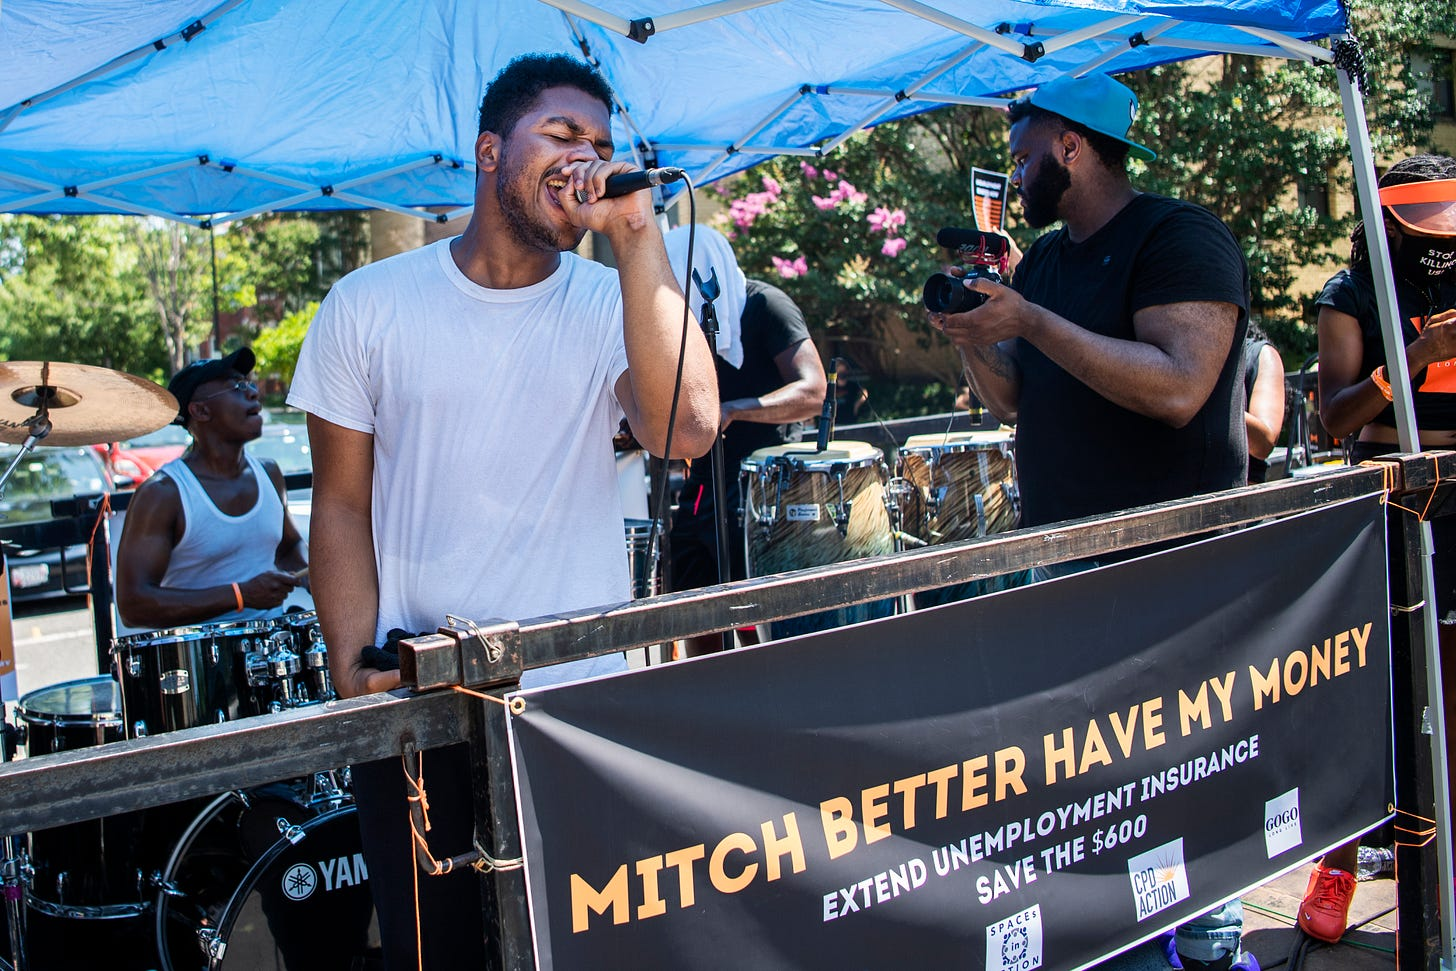 """man singing at a protest with a sign reading """"MITCH BETTER HAVE MY MONEY; extend unemployment insurance; save the $600"""""""